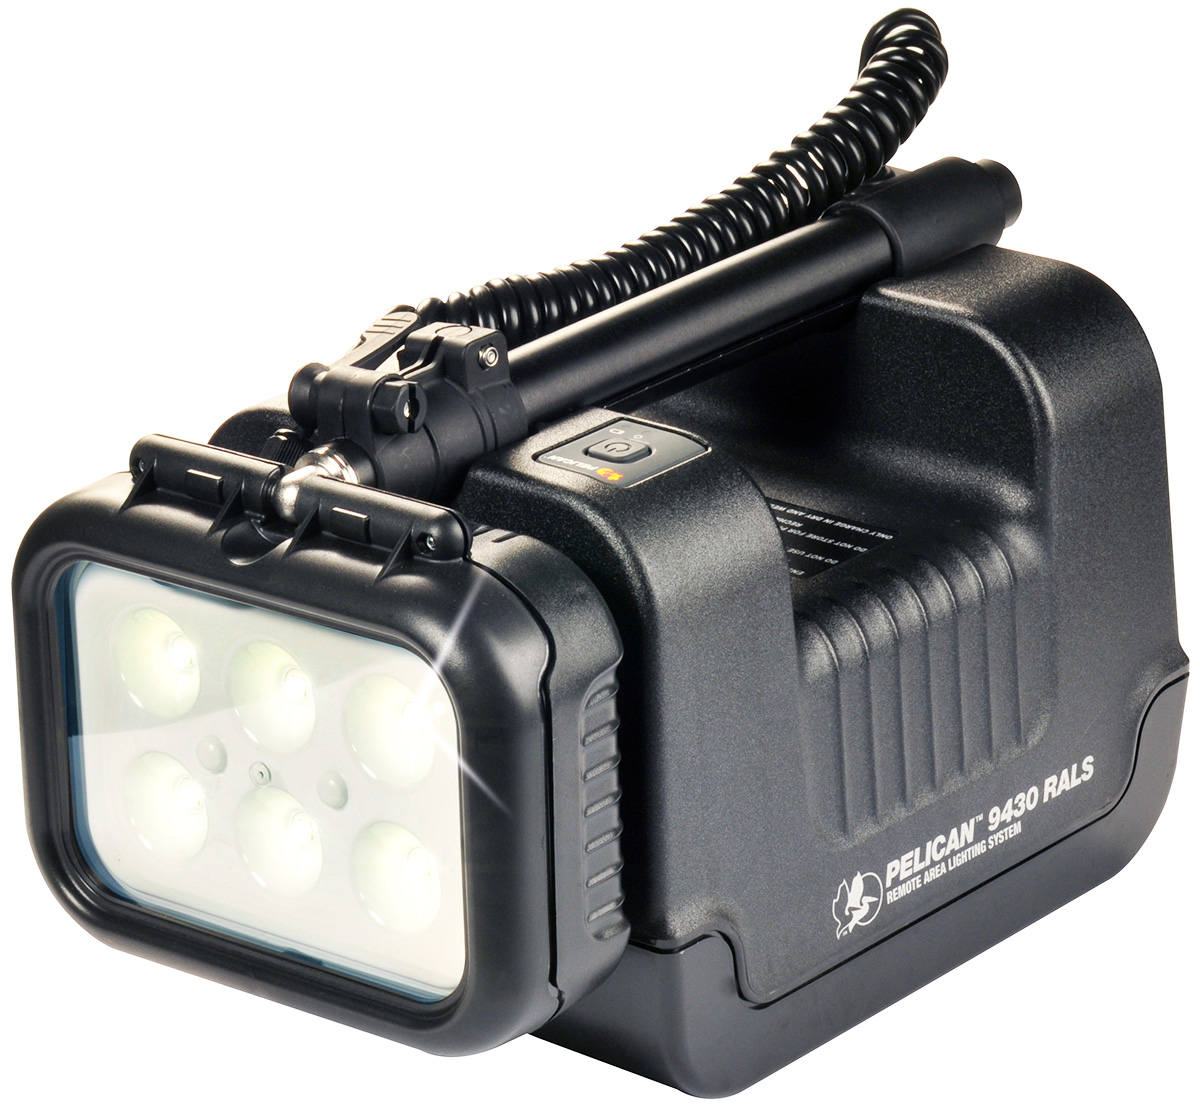 pelican 9430 portable work emergency led light